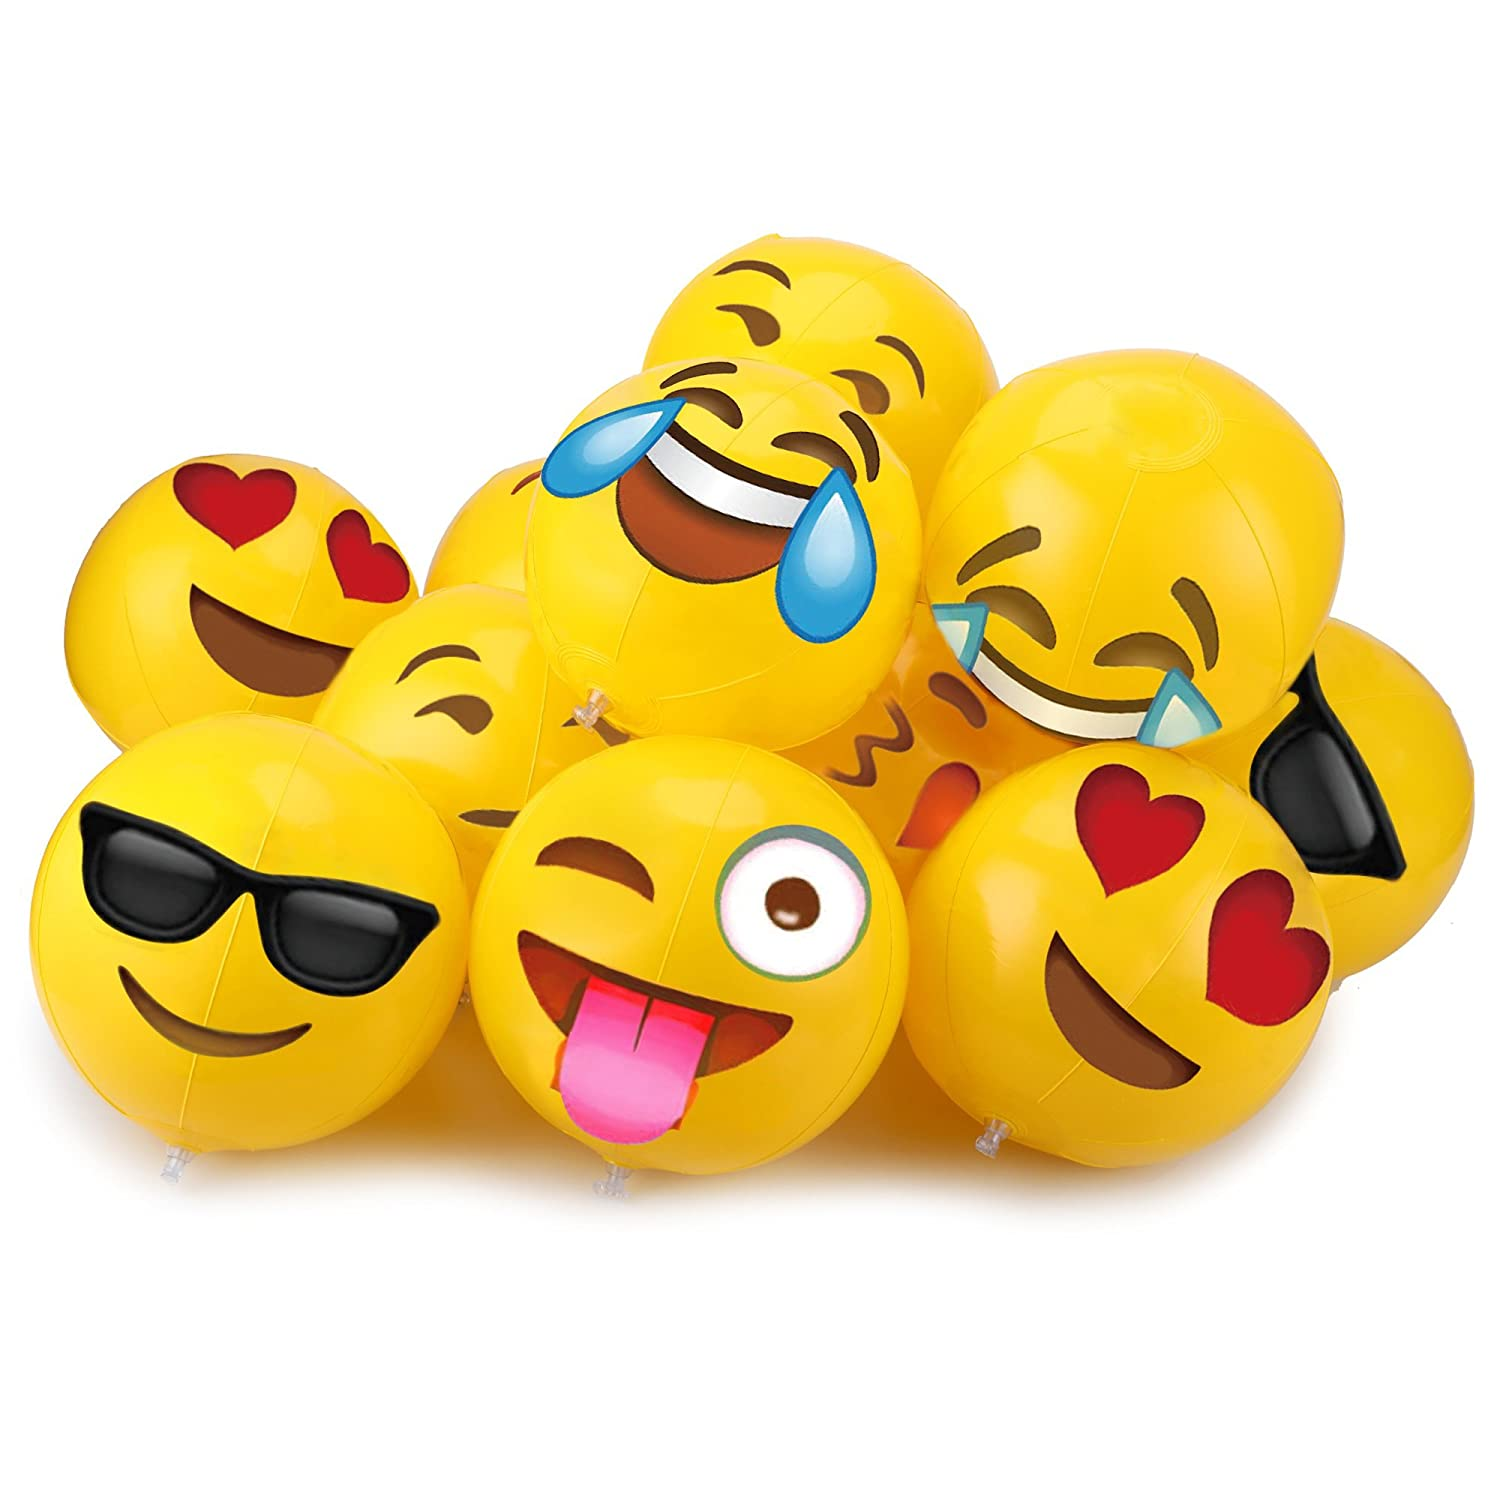 Temporary Tattoos 12pack 40pcs Konsait 12inch Emoji Party Pack Inflatable Beach Balls for Boys Girls Kids Funny Emoji Body Stickers for Beach Pool Party Toys Emoji Themed Party Favors Supplies